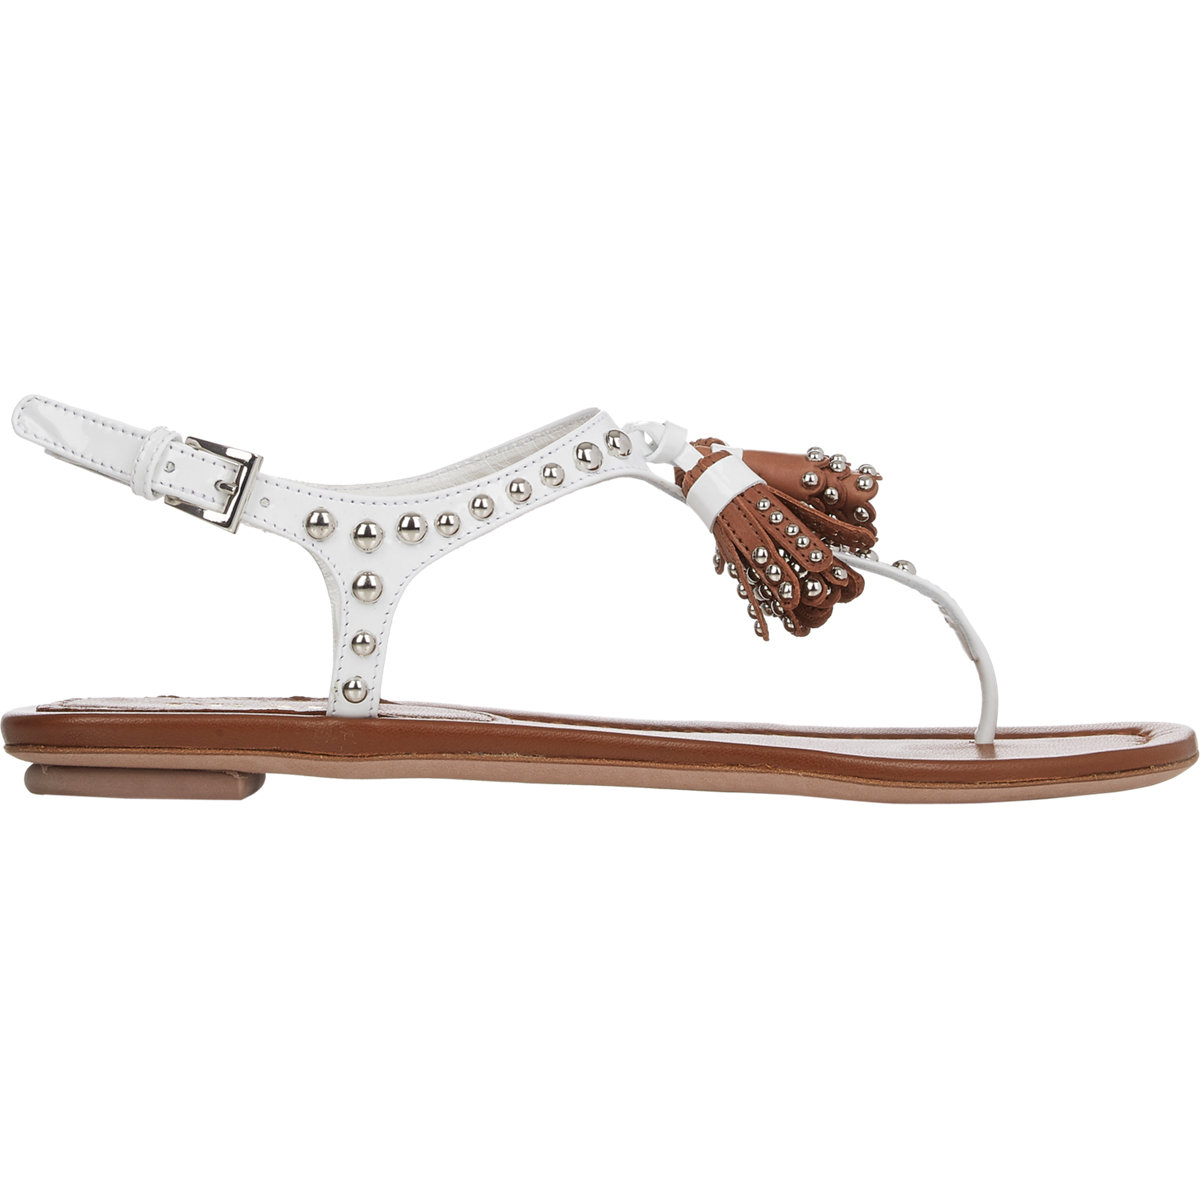 Prada Tassel T-Strap Sandals buy cheap extremely low cost for sale amazon for sale pre order online EnSuH